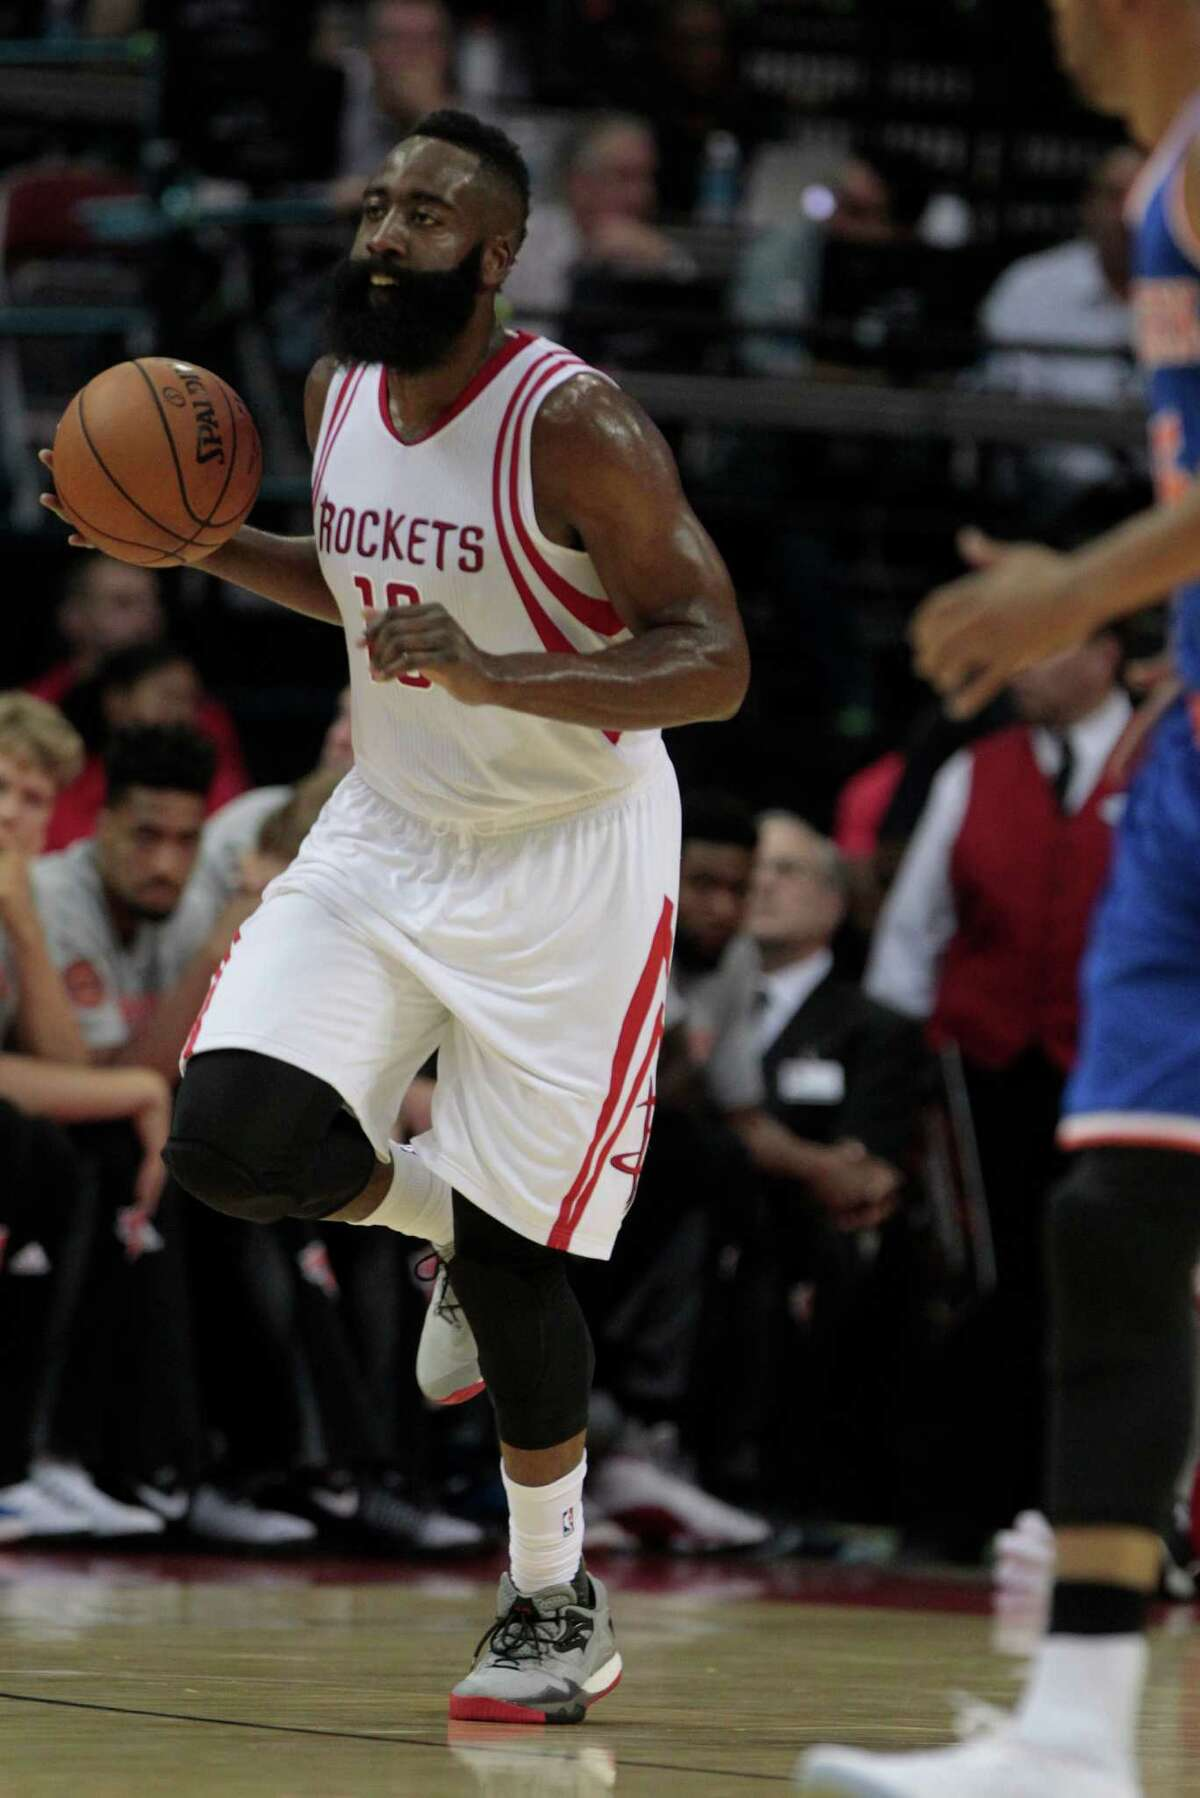 Houston Rockets guard James Harden (13) drives the ball up court against New York Knicks at the Toyota Center on Tuesday, Oct. 4, 2016, in Houston. ( Elizabeth Conley / Houston Chronicle )